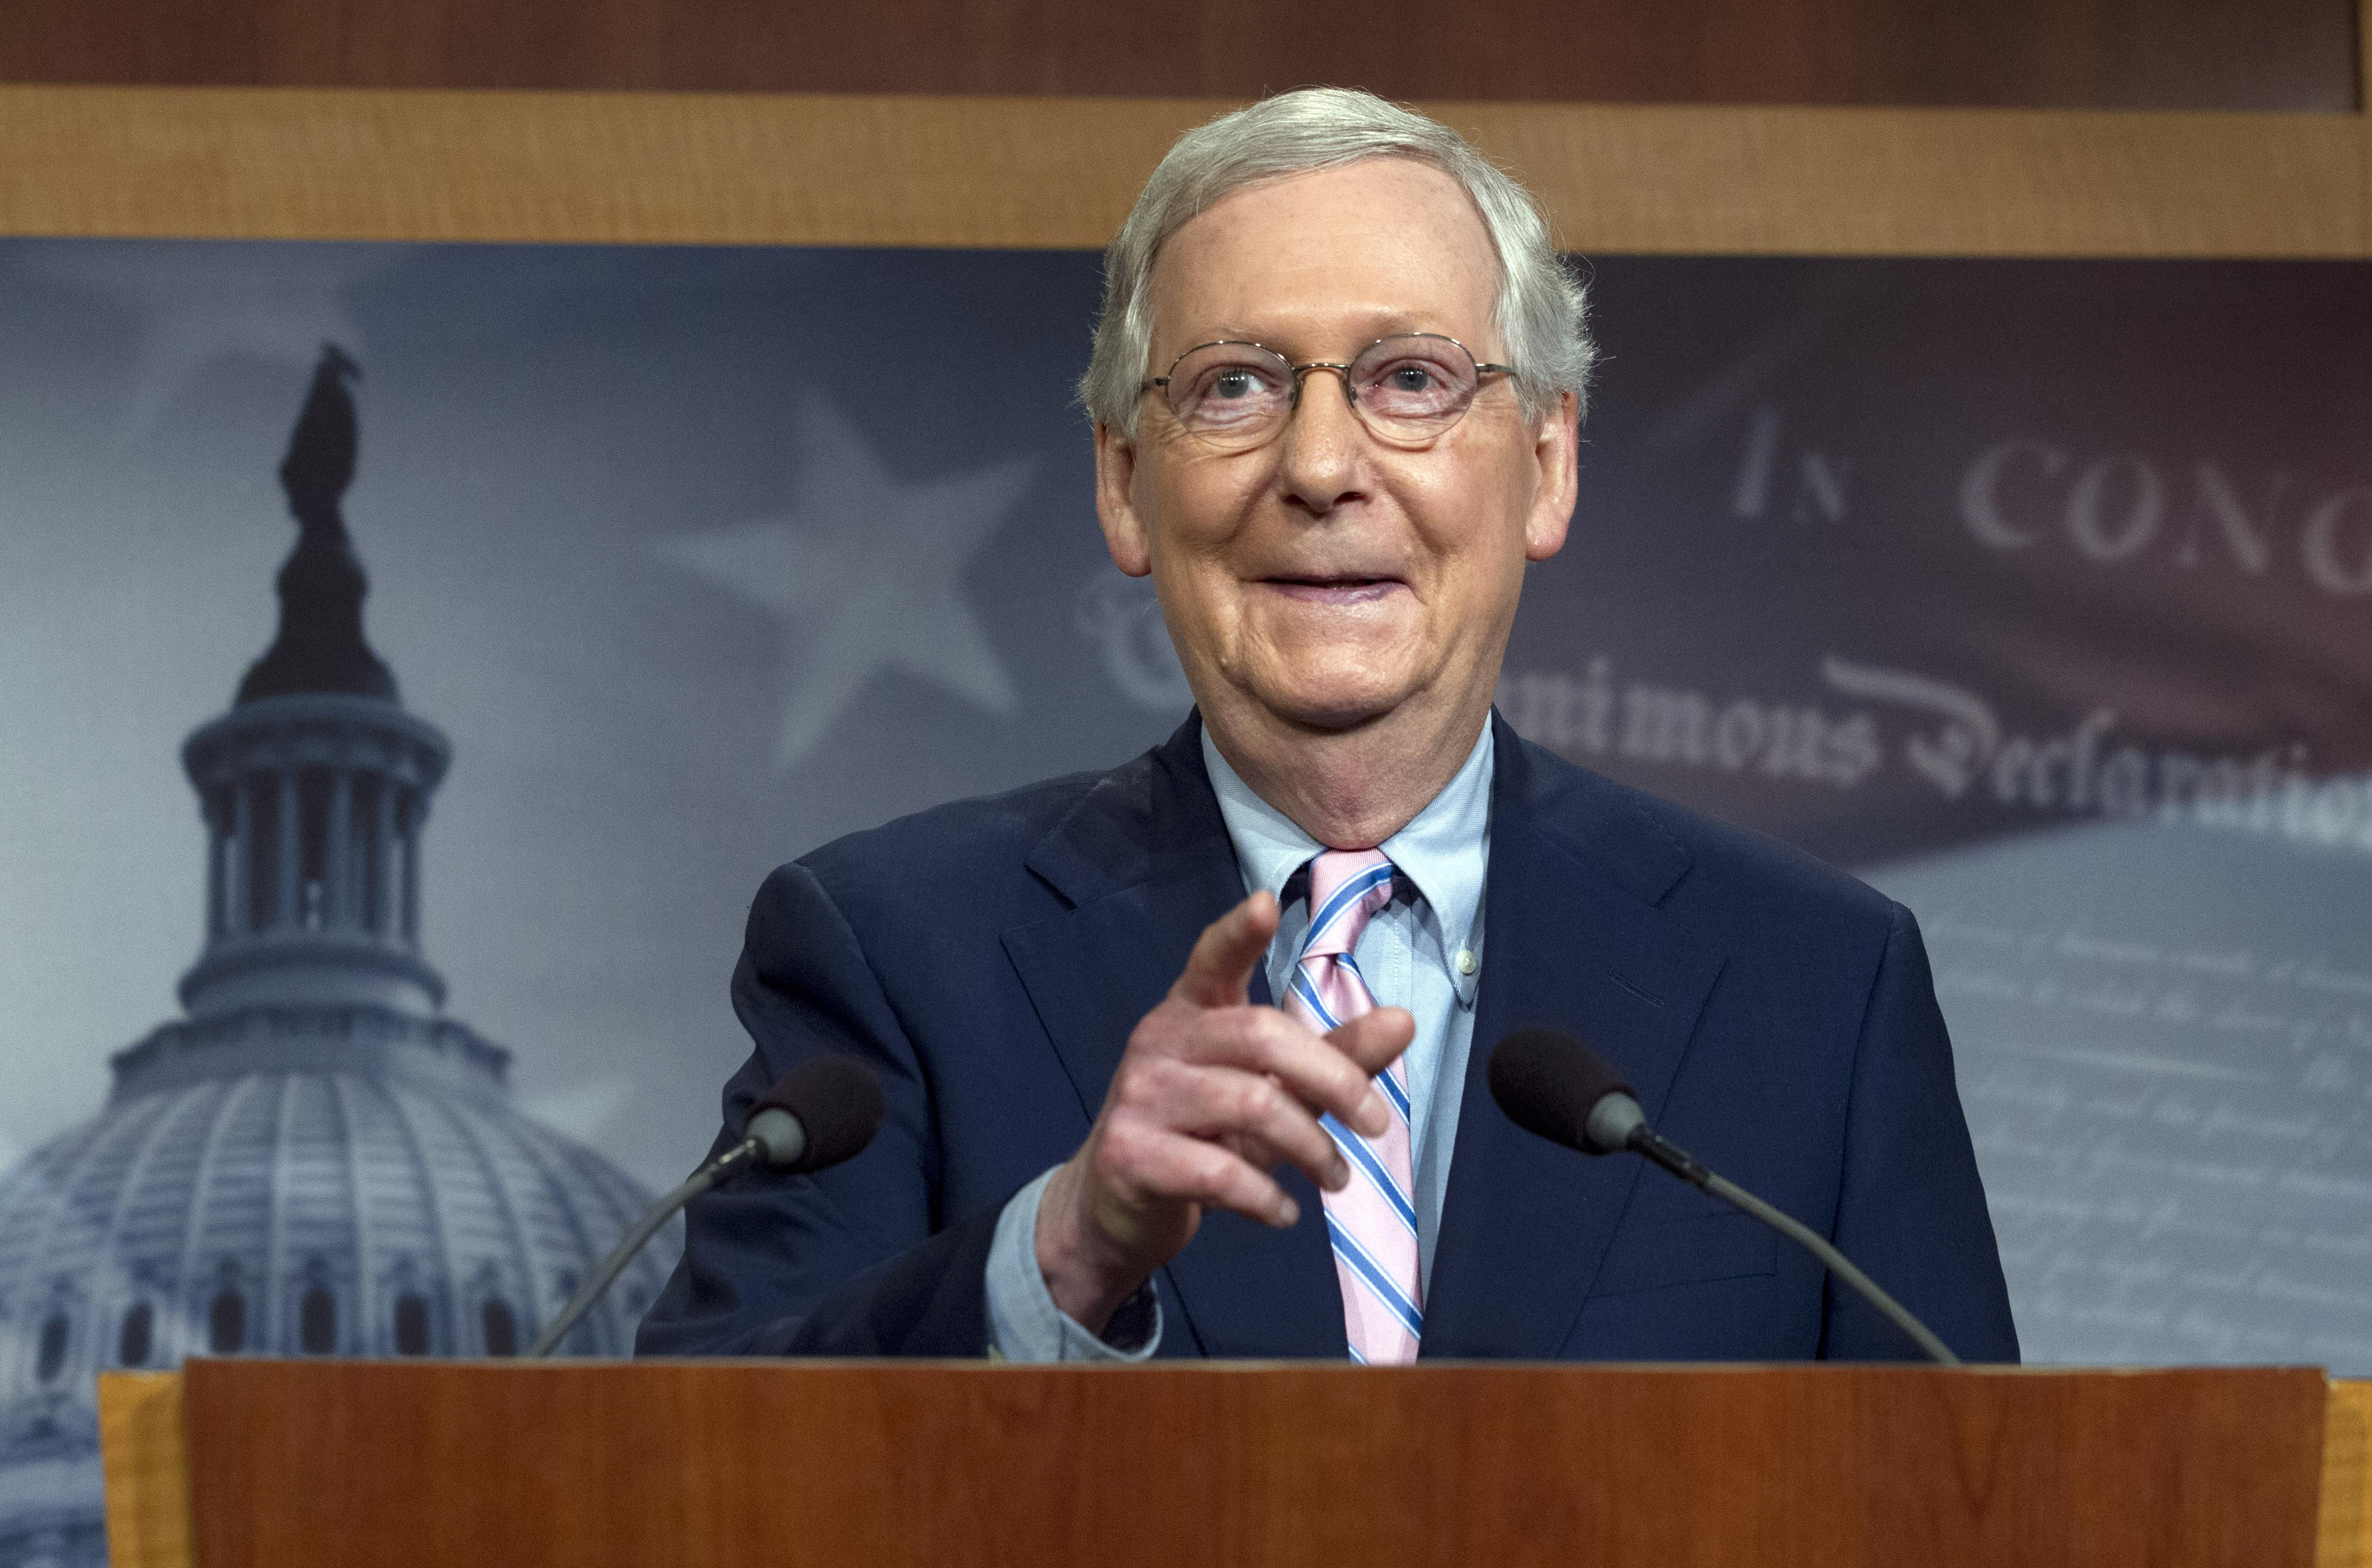 Senate Majority Leader Mitch McConnell, R-KY, speaks during a news conference following the confirmation vote of Supreme Court nominee Brett Kavanaugh on Capitol Hill in Washington D.C. on October 6, 2018.